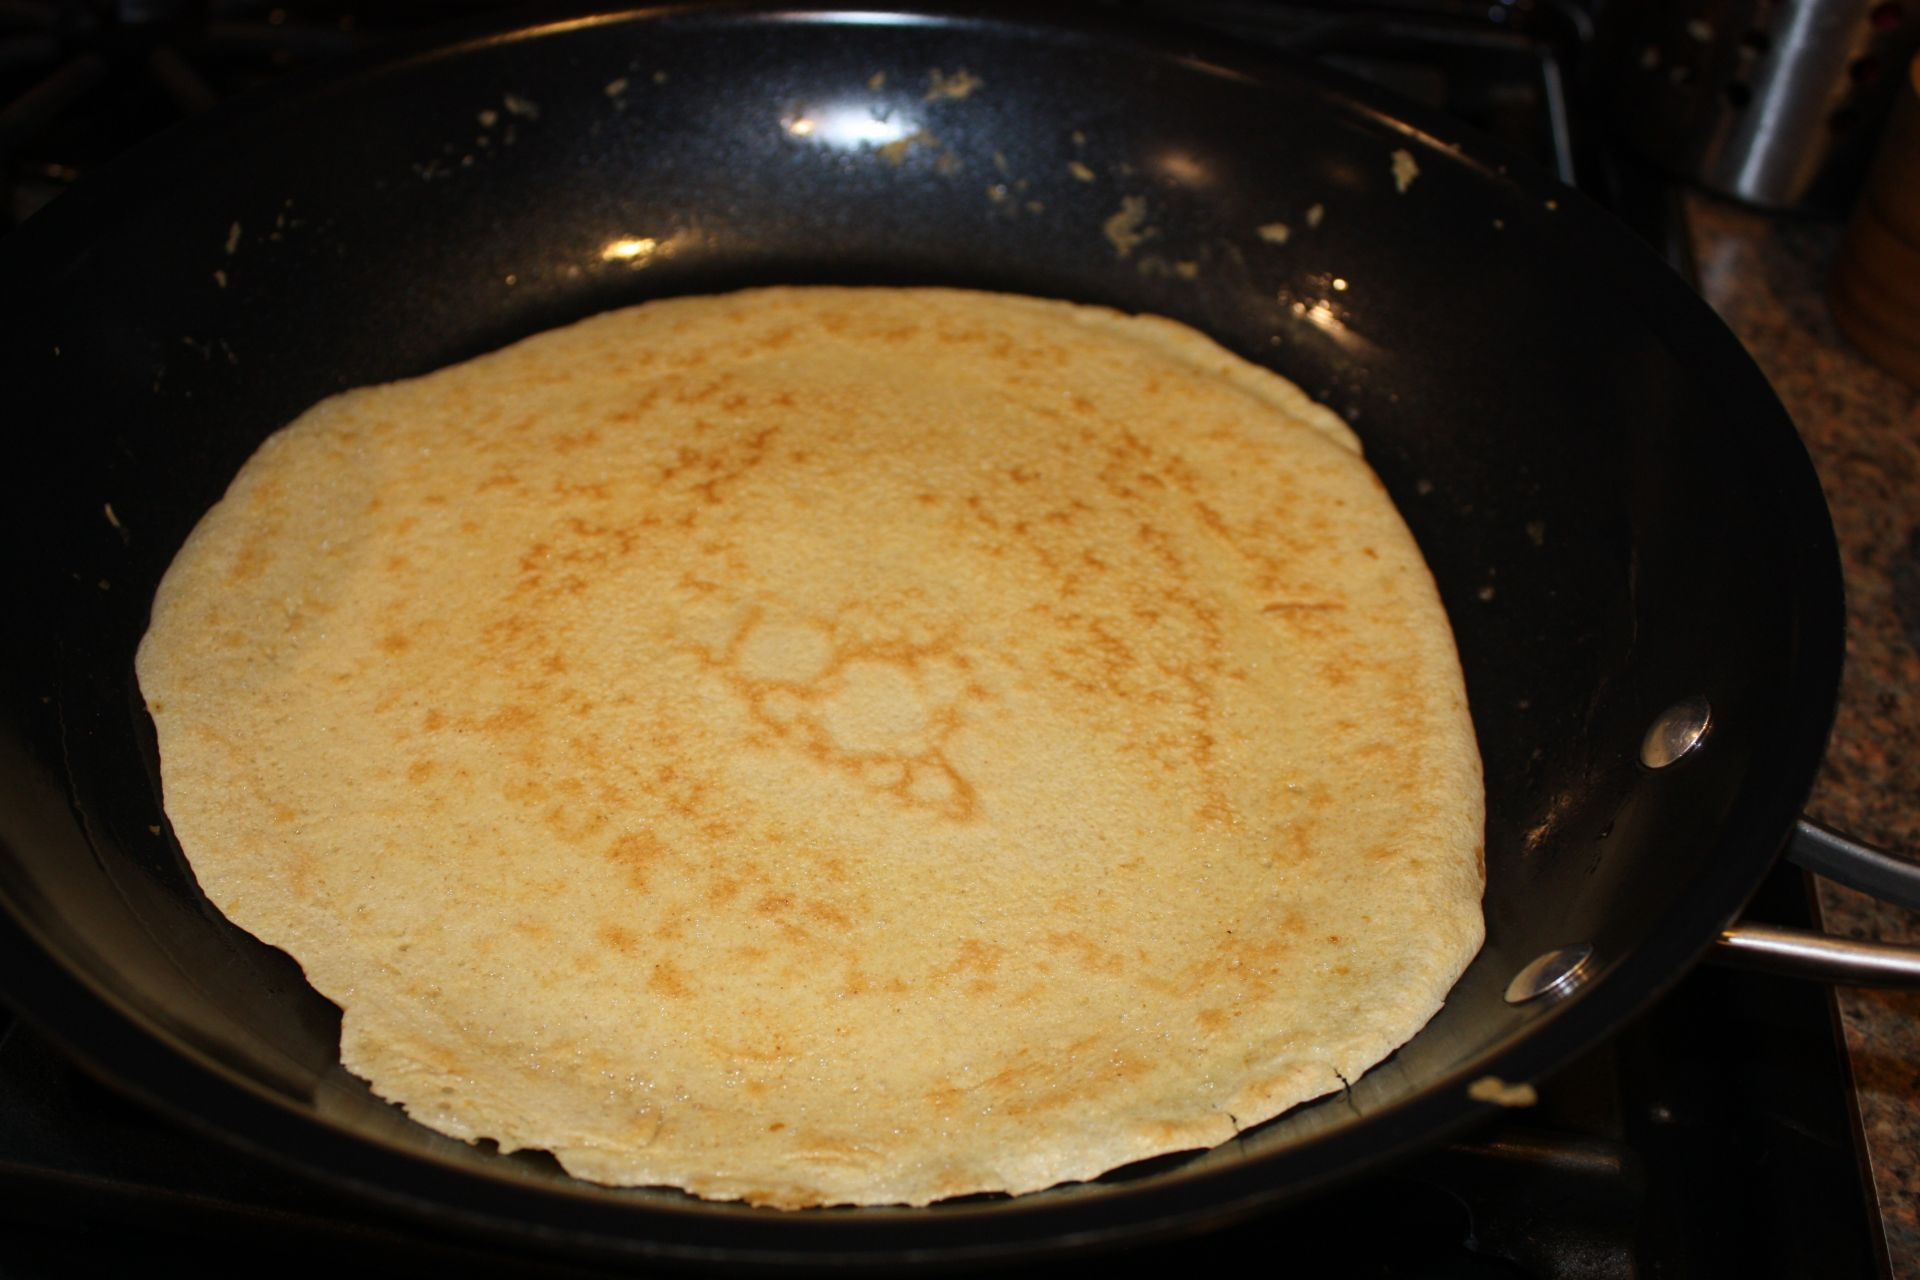 I cooked the 2nd crepe a bit longer, it's your choice!